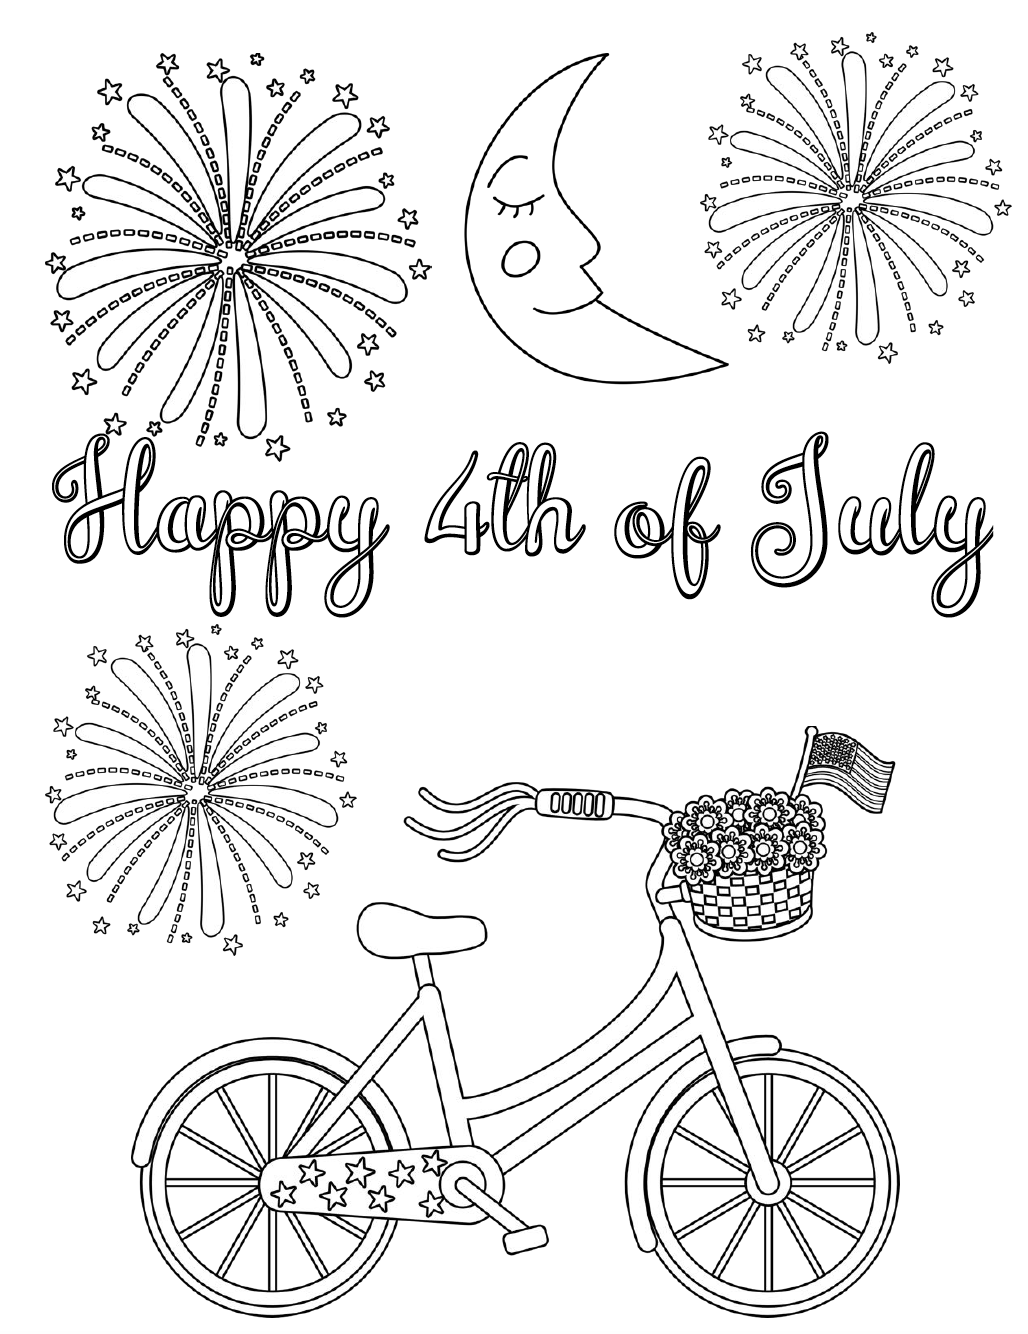 photo about Free Printable 4th of July Coloring Pages identify Free of charge Printable Fourth of July Coloring Internet pages: 4 Programs